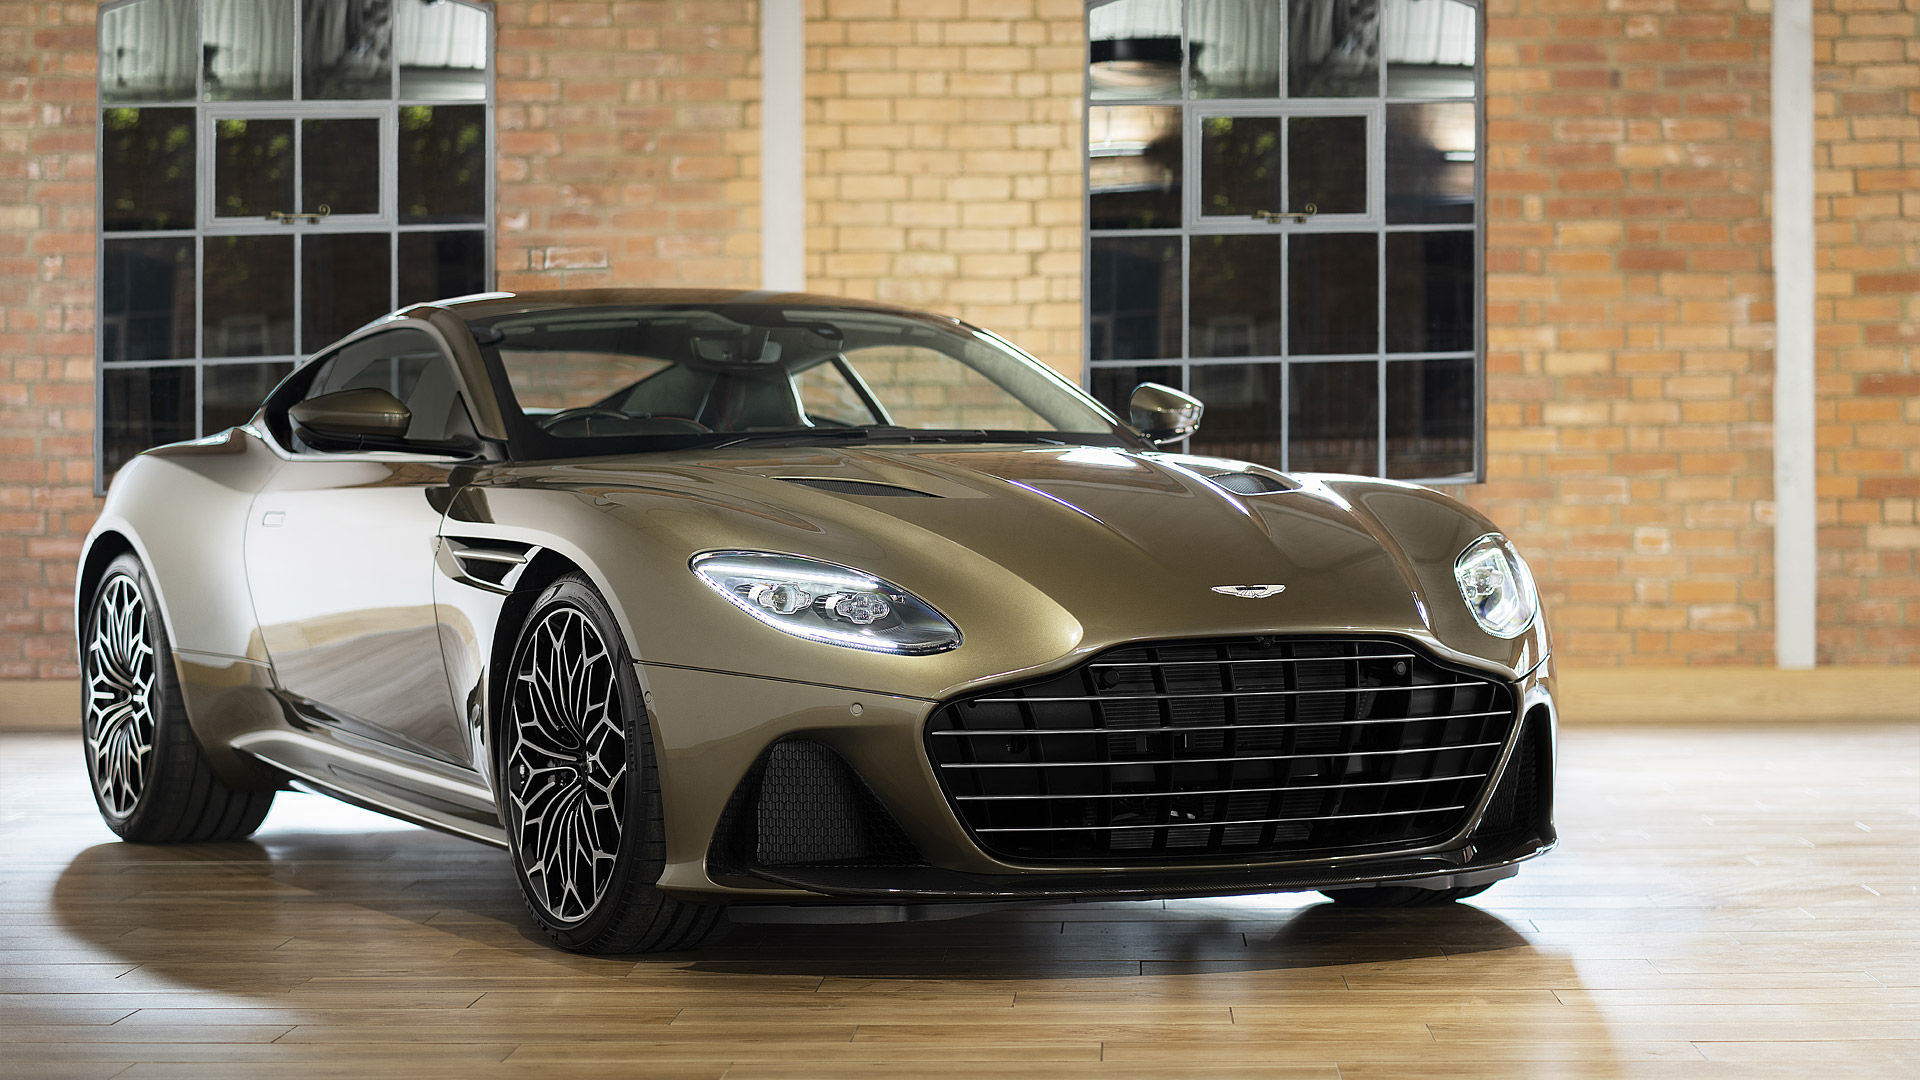 2019 Aston Martin DBS Superleggera OHMSS Edition